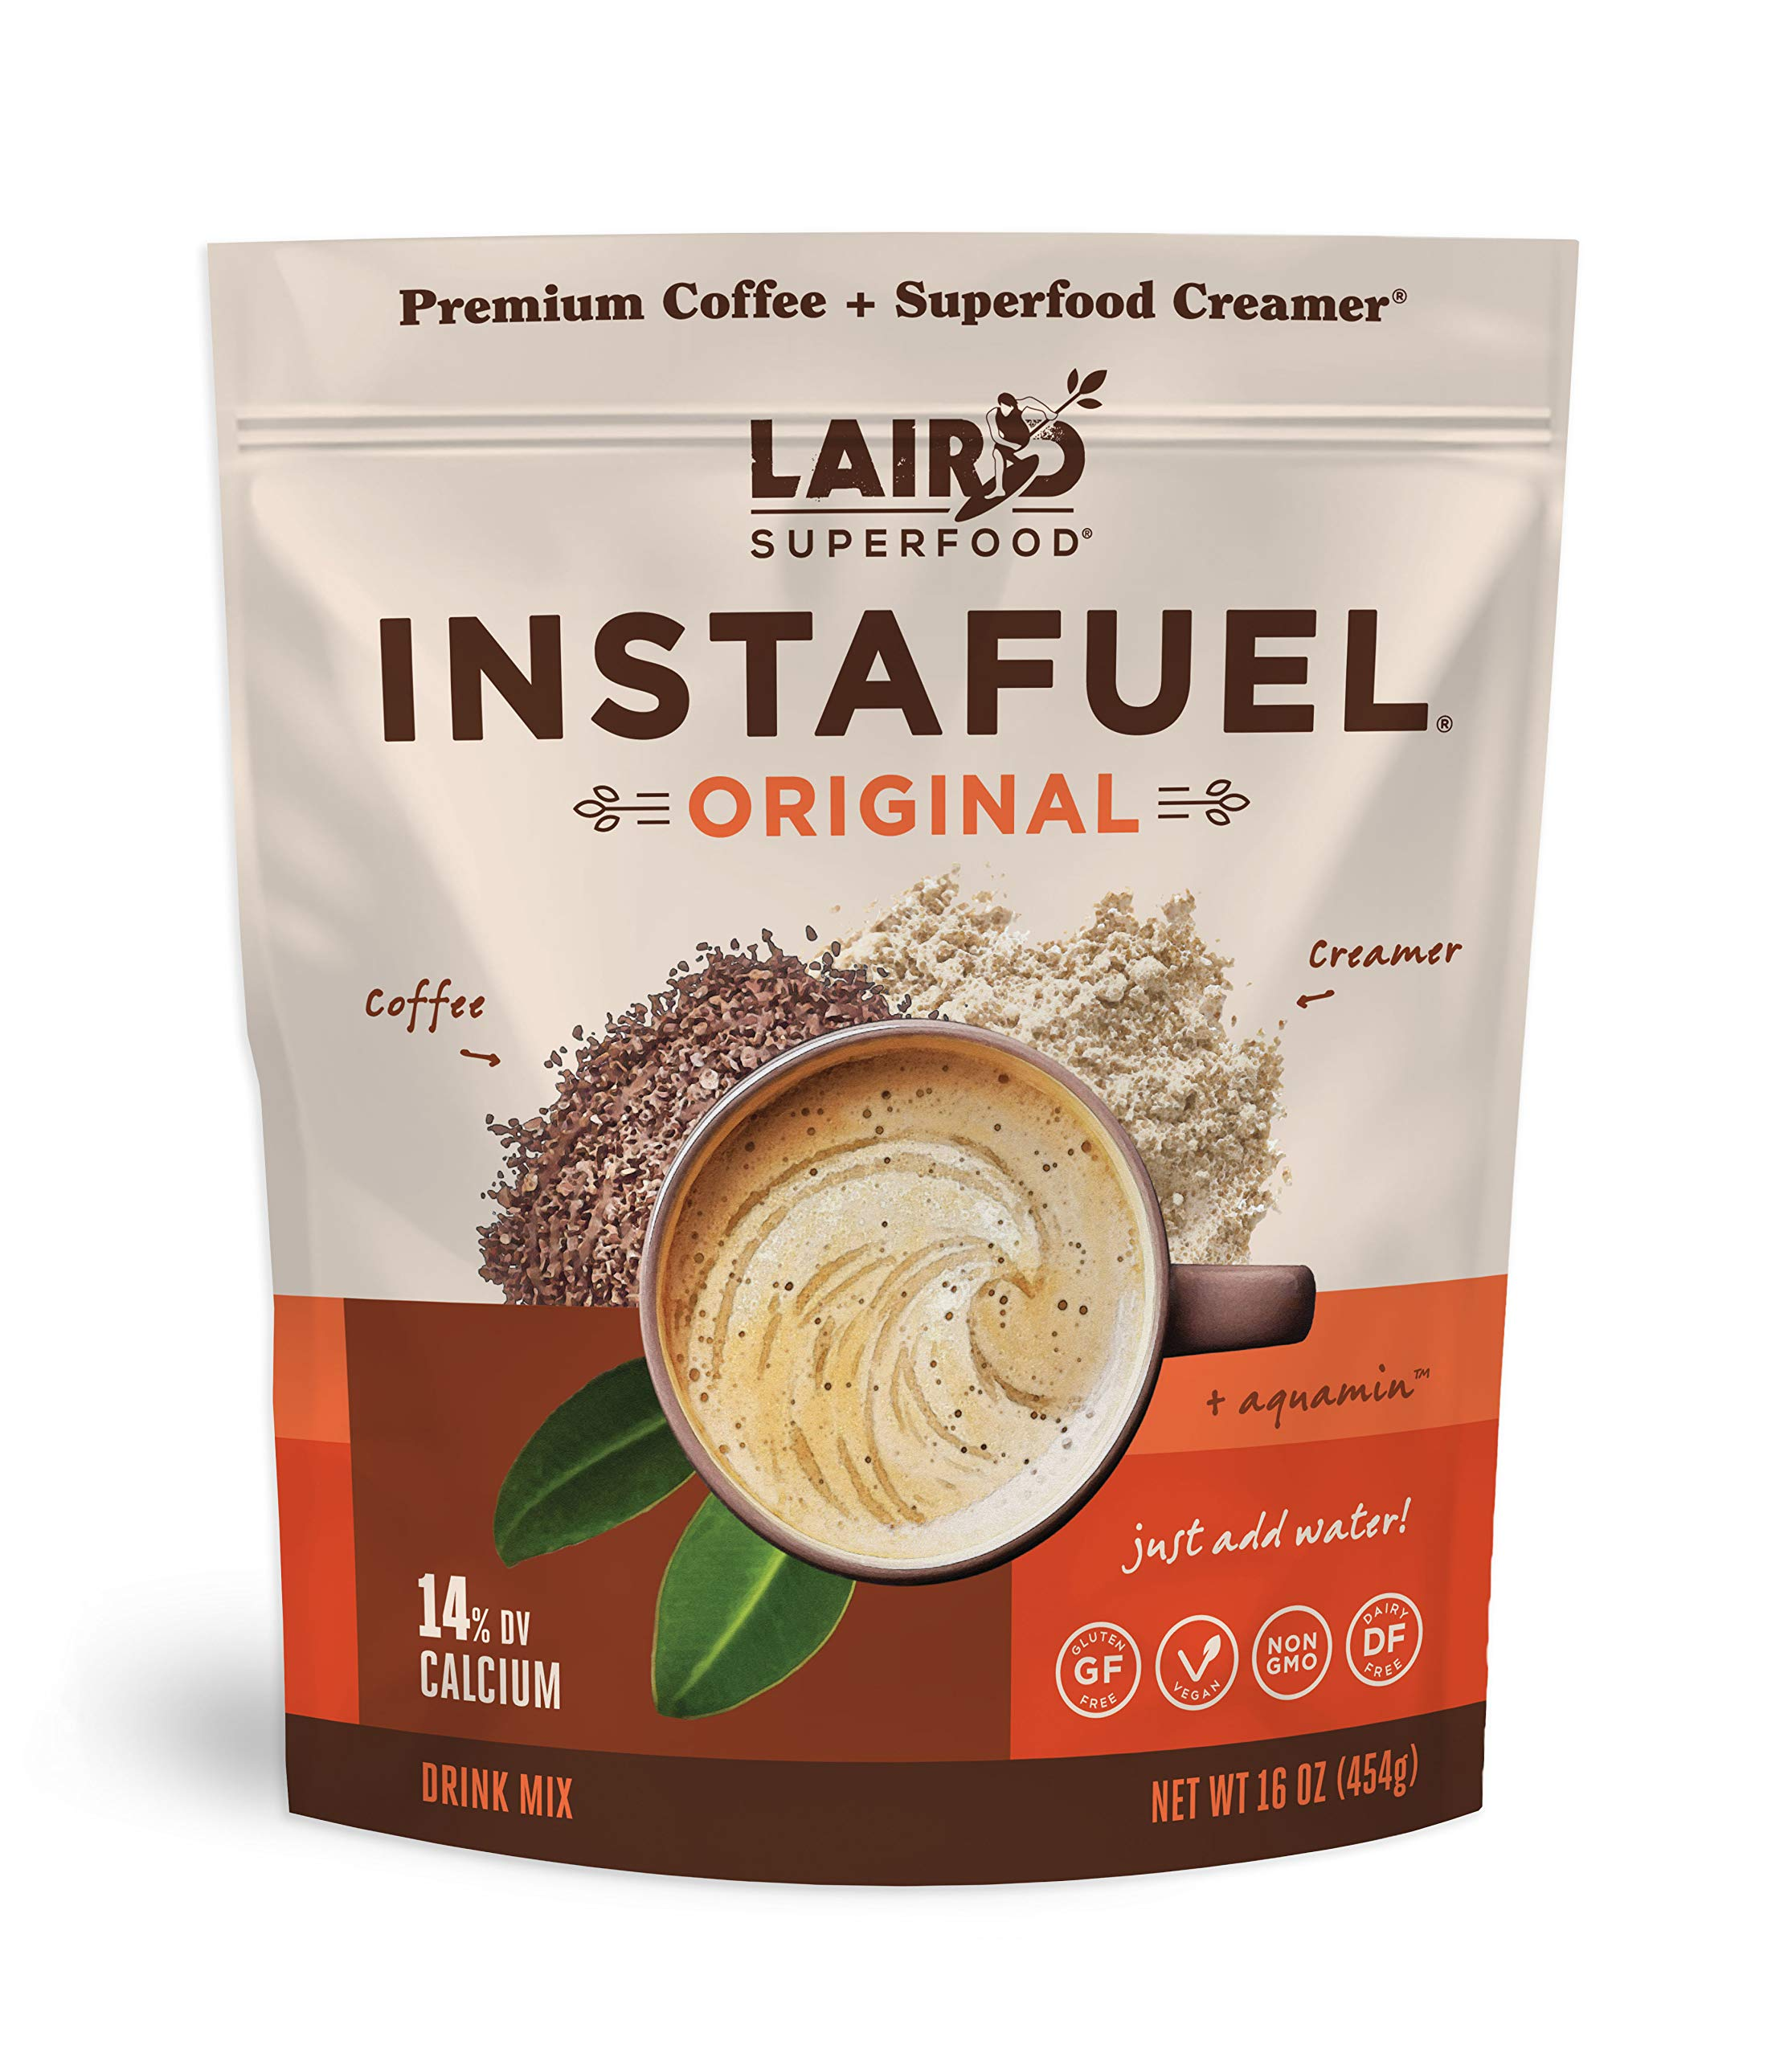 Laird Superfood Instafuel Instant Coffee, 1 lb by Laird Superfood